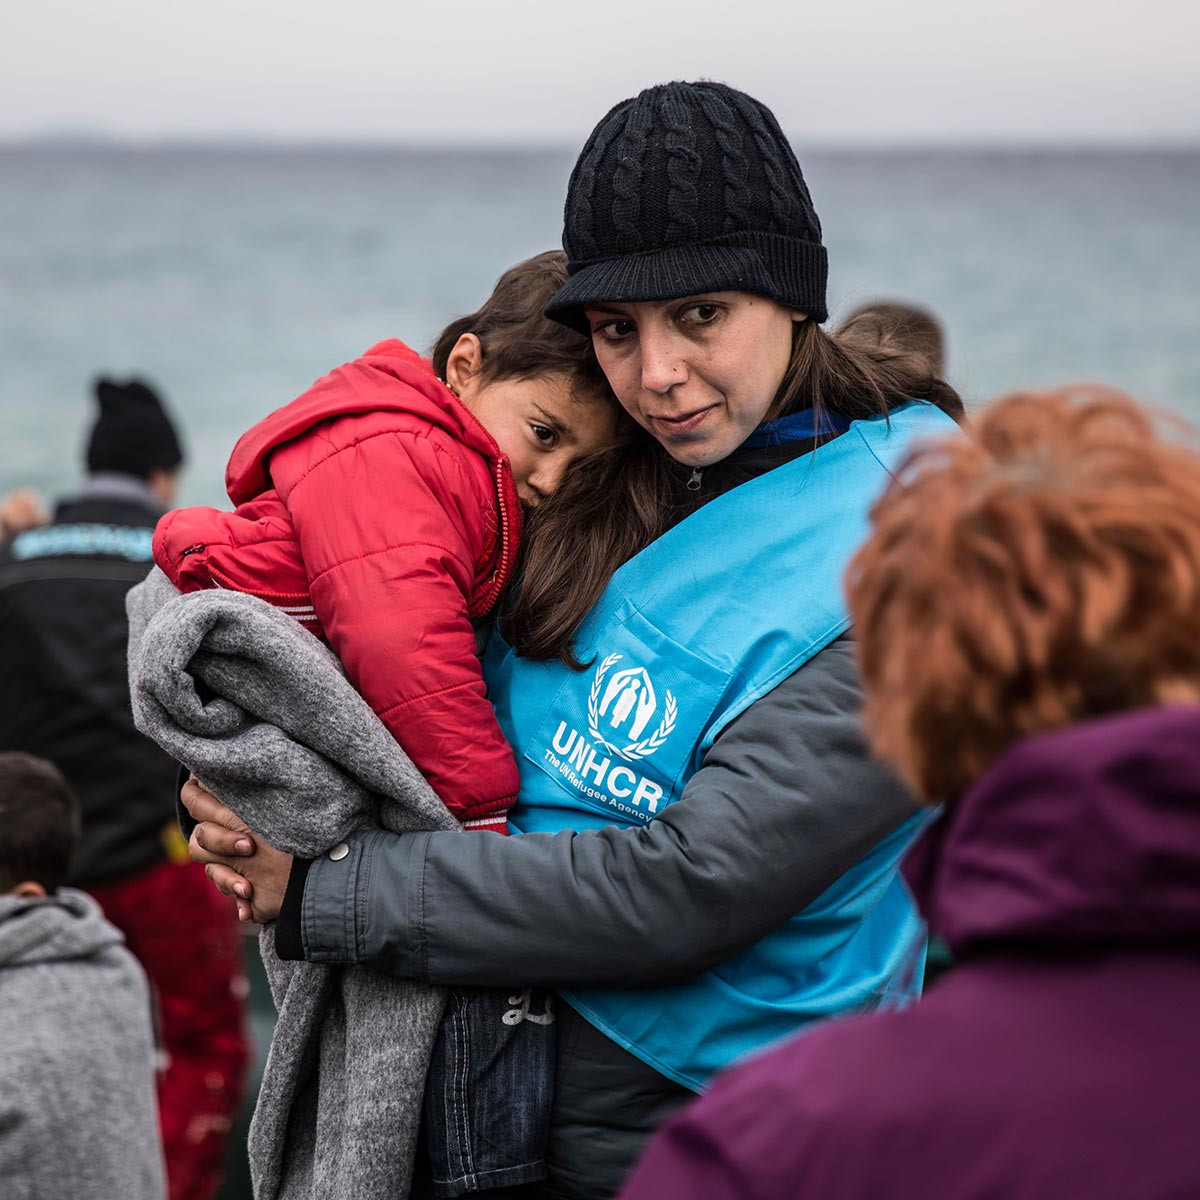 """account of the united nations aid to the refugees of the syrian conflict The mahmut family from syria began a new life in ottawa in 2016, under canada's humanitarian programme to resettle 25,000 syrian refugees since the evacuation of east aleppo,"""" under-secretary-general for humanitarian affairs and emergency relief coordinator stephen o'brien told the council."""